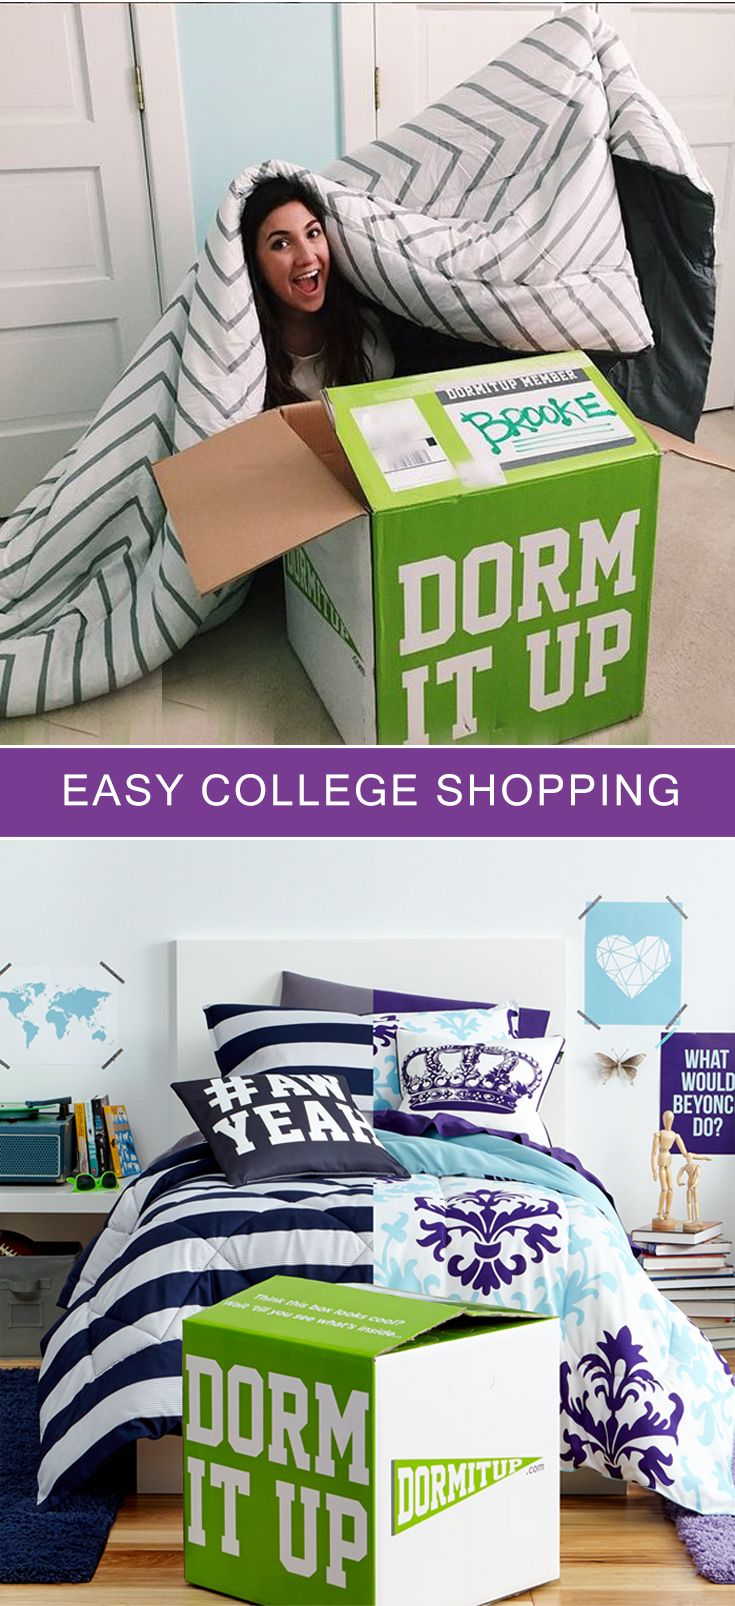 Get everything for your dorm, all in one box! FREE SHIPPING to you door! Save up to 50% vs stores. www.dormitup.com   Photo by BrookeMiccio